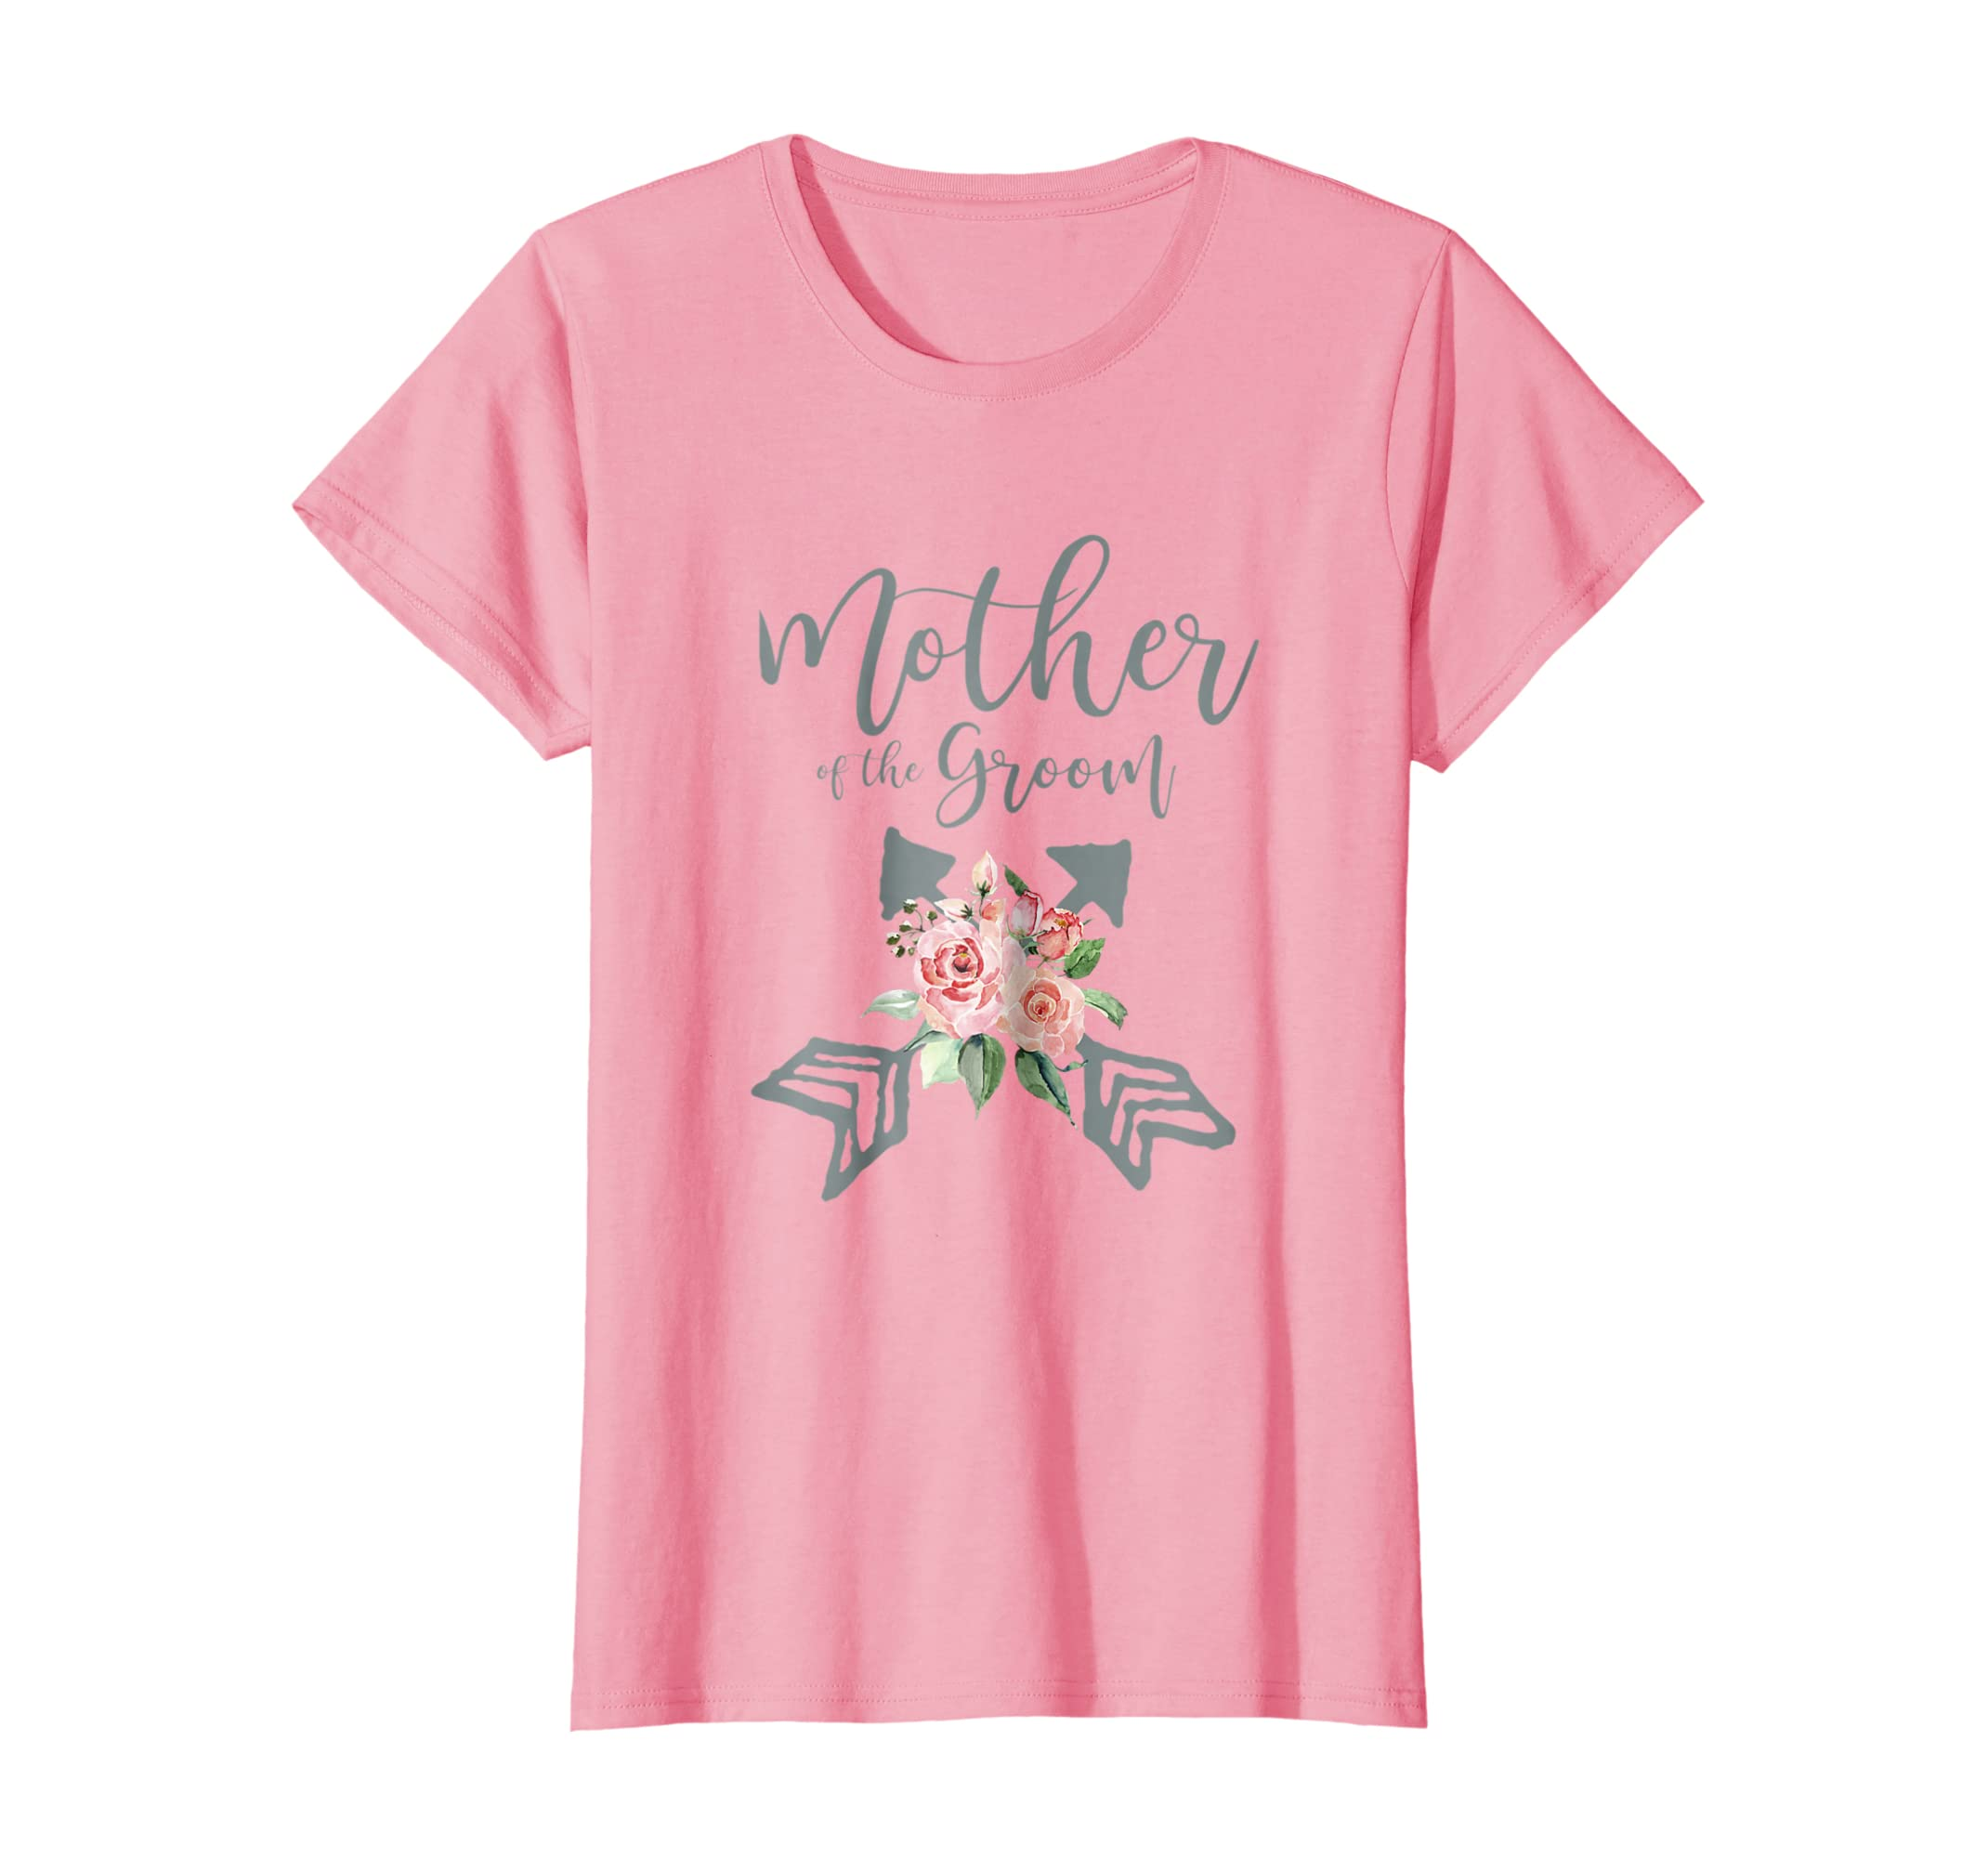 800f2440 Amazon.com: Bridal Party Shirts Mother of Groom Boho Pink Floral Tribe:  Clothing